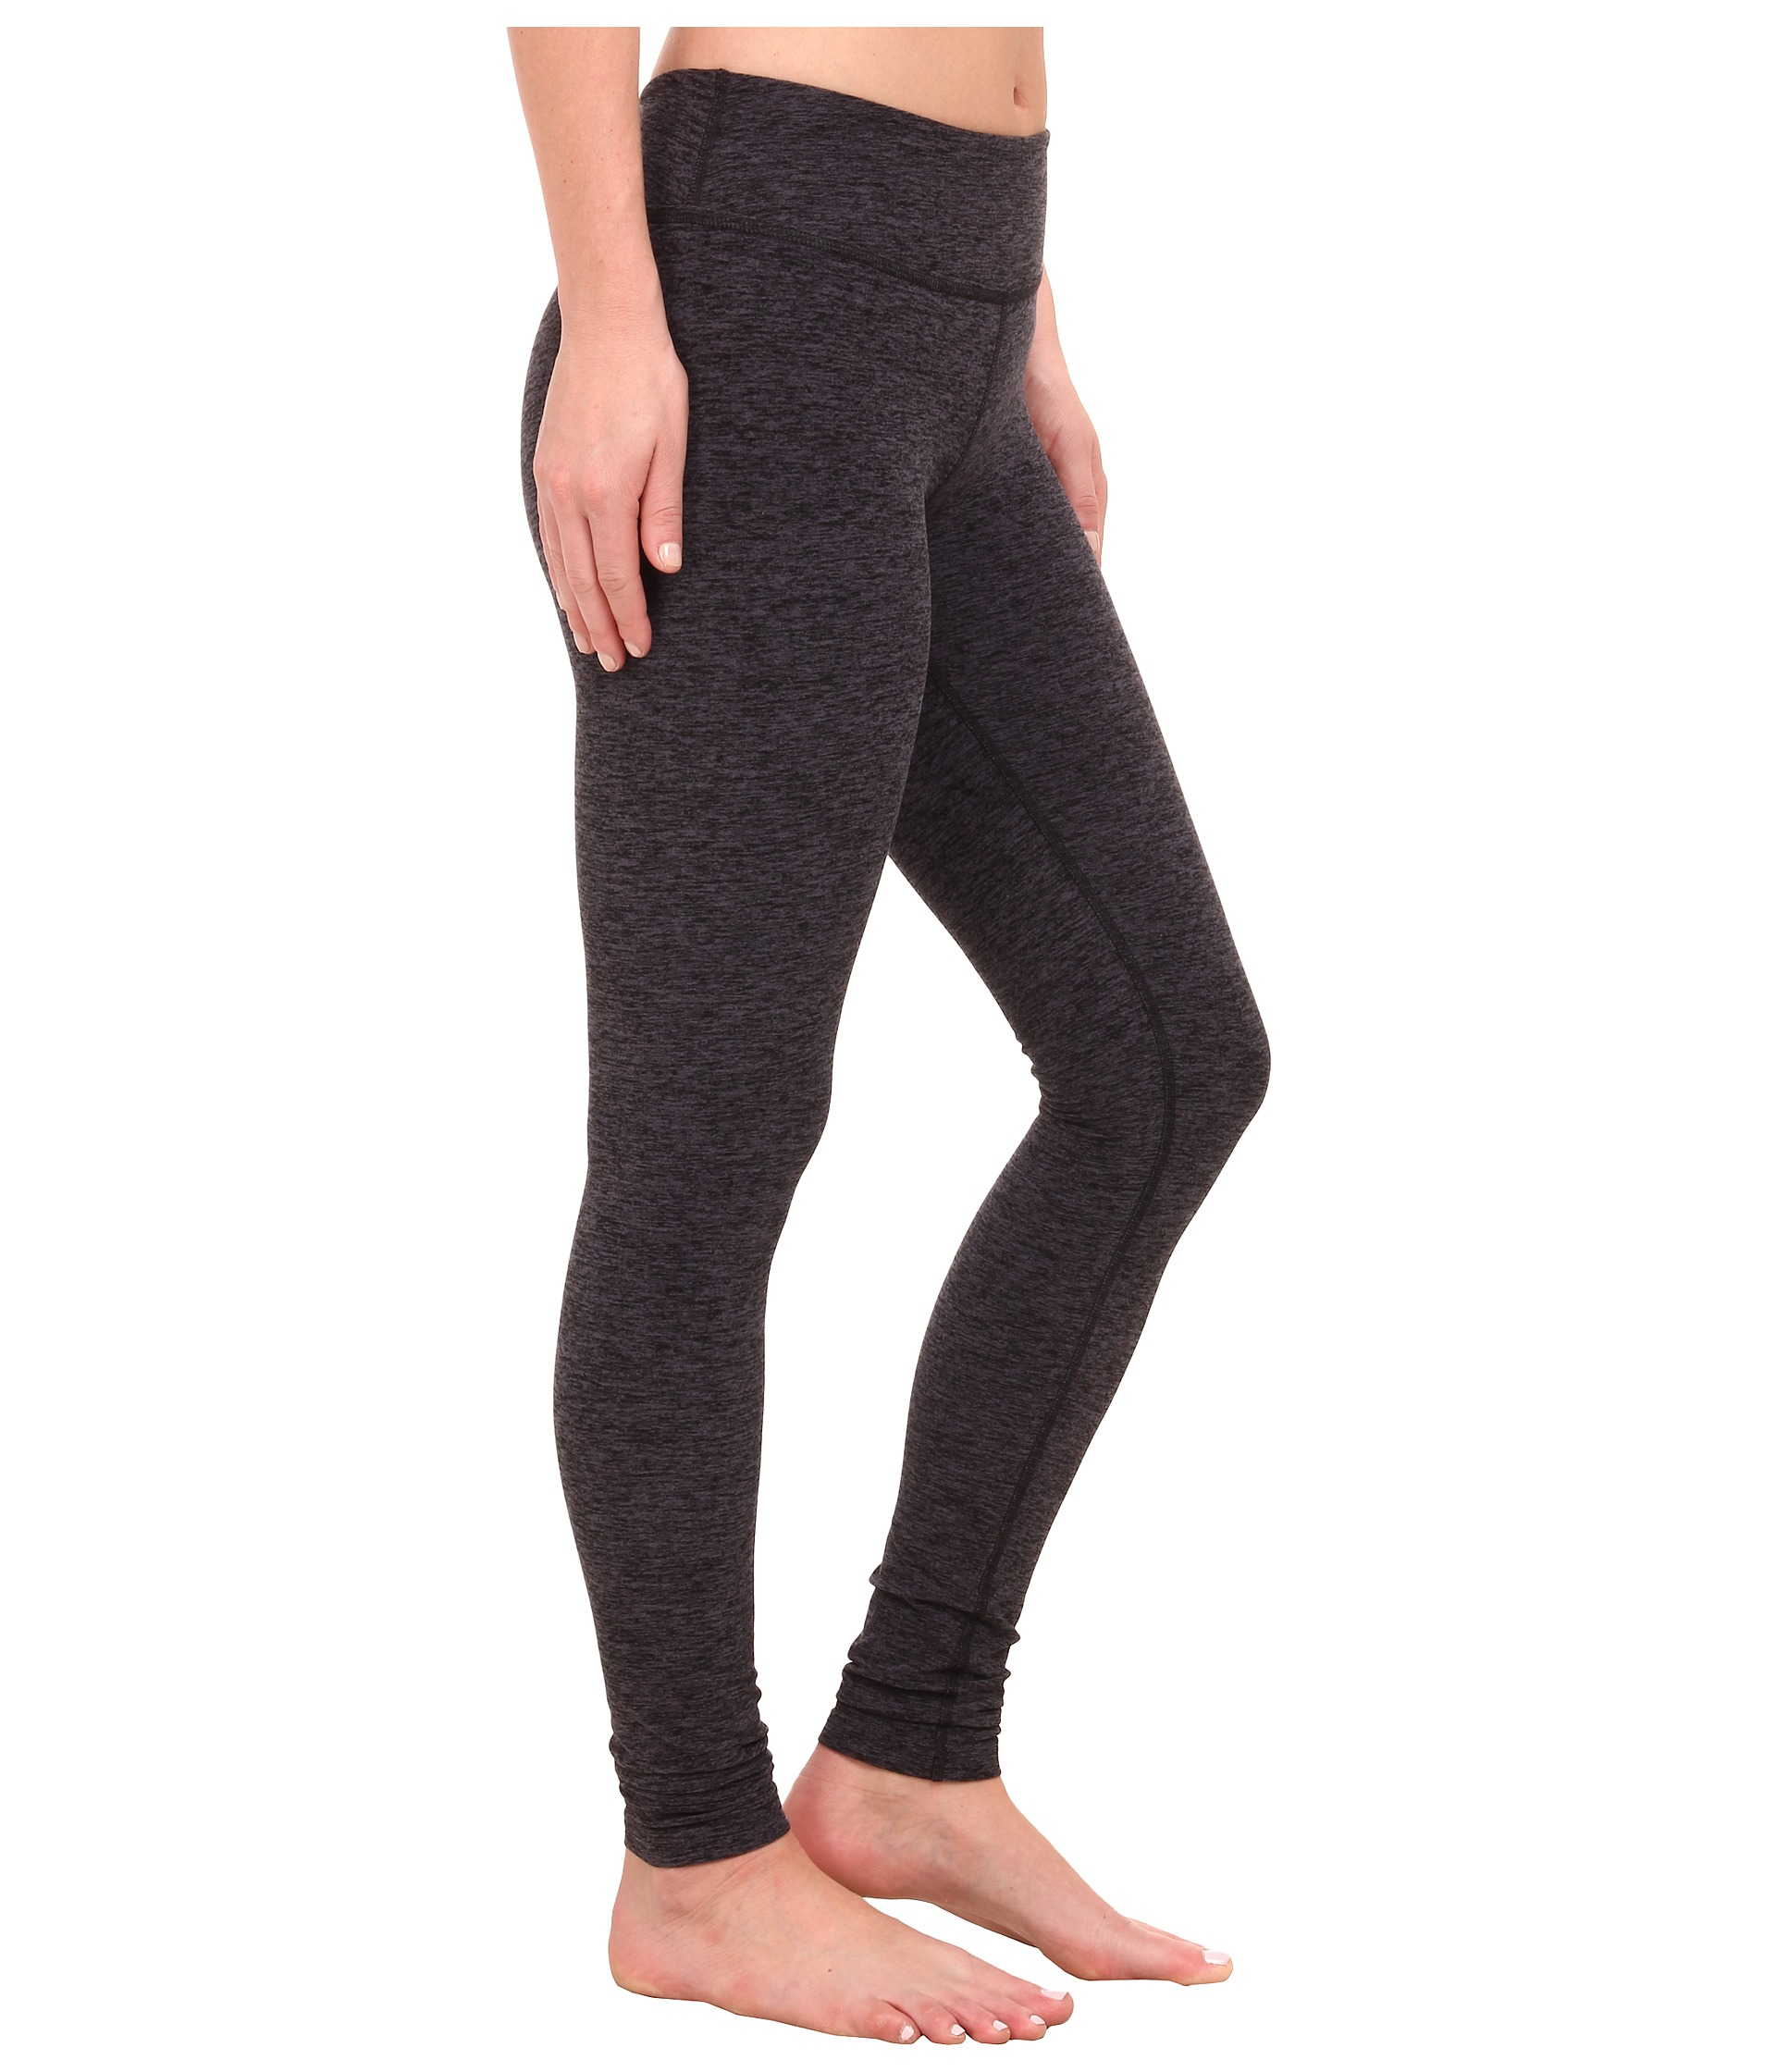 Click Women's Cotton Spandex Yoga Pants and color chart to see enlarged pictures Our superstore offers the most comfortable and sytlish Cotton Spandex Yoga Pants on the web. These Cotton Spandex Yoga Pants are perfect for excercising as well as casual wear.